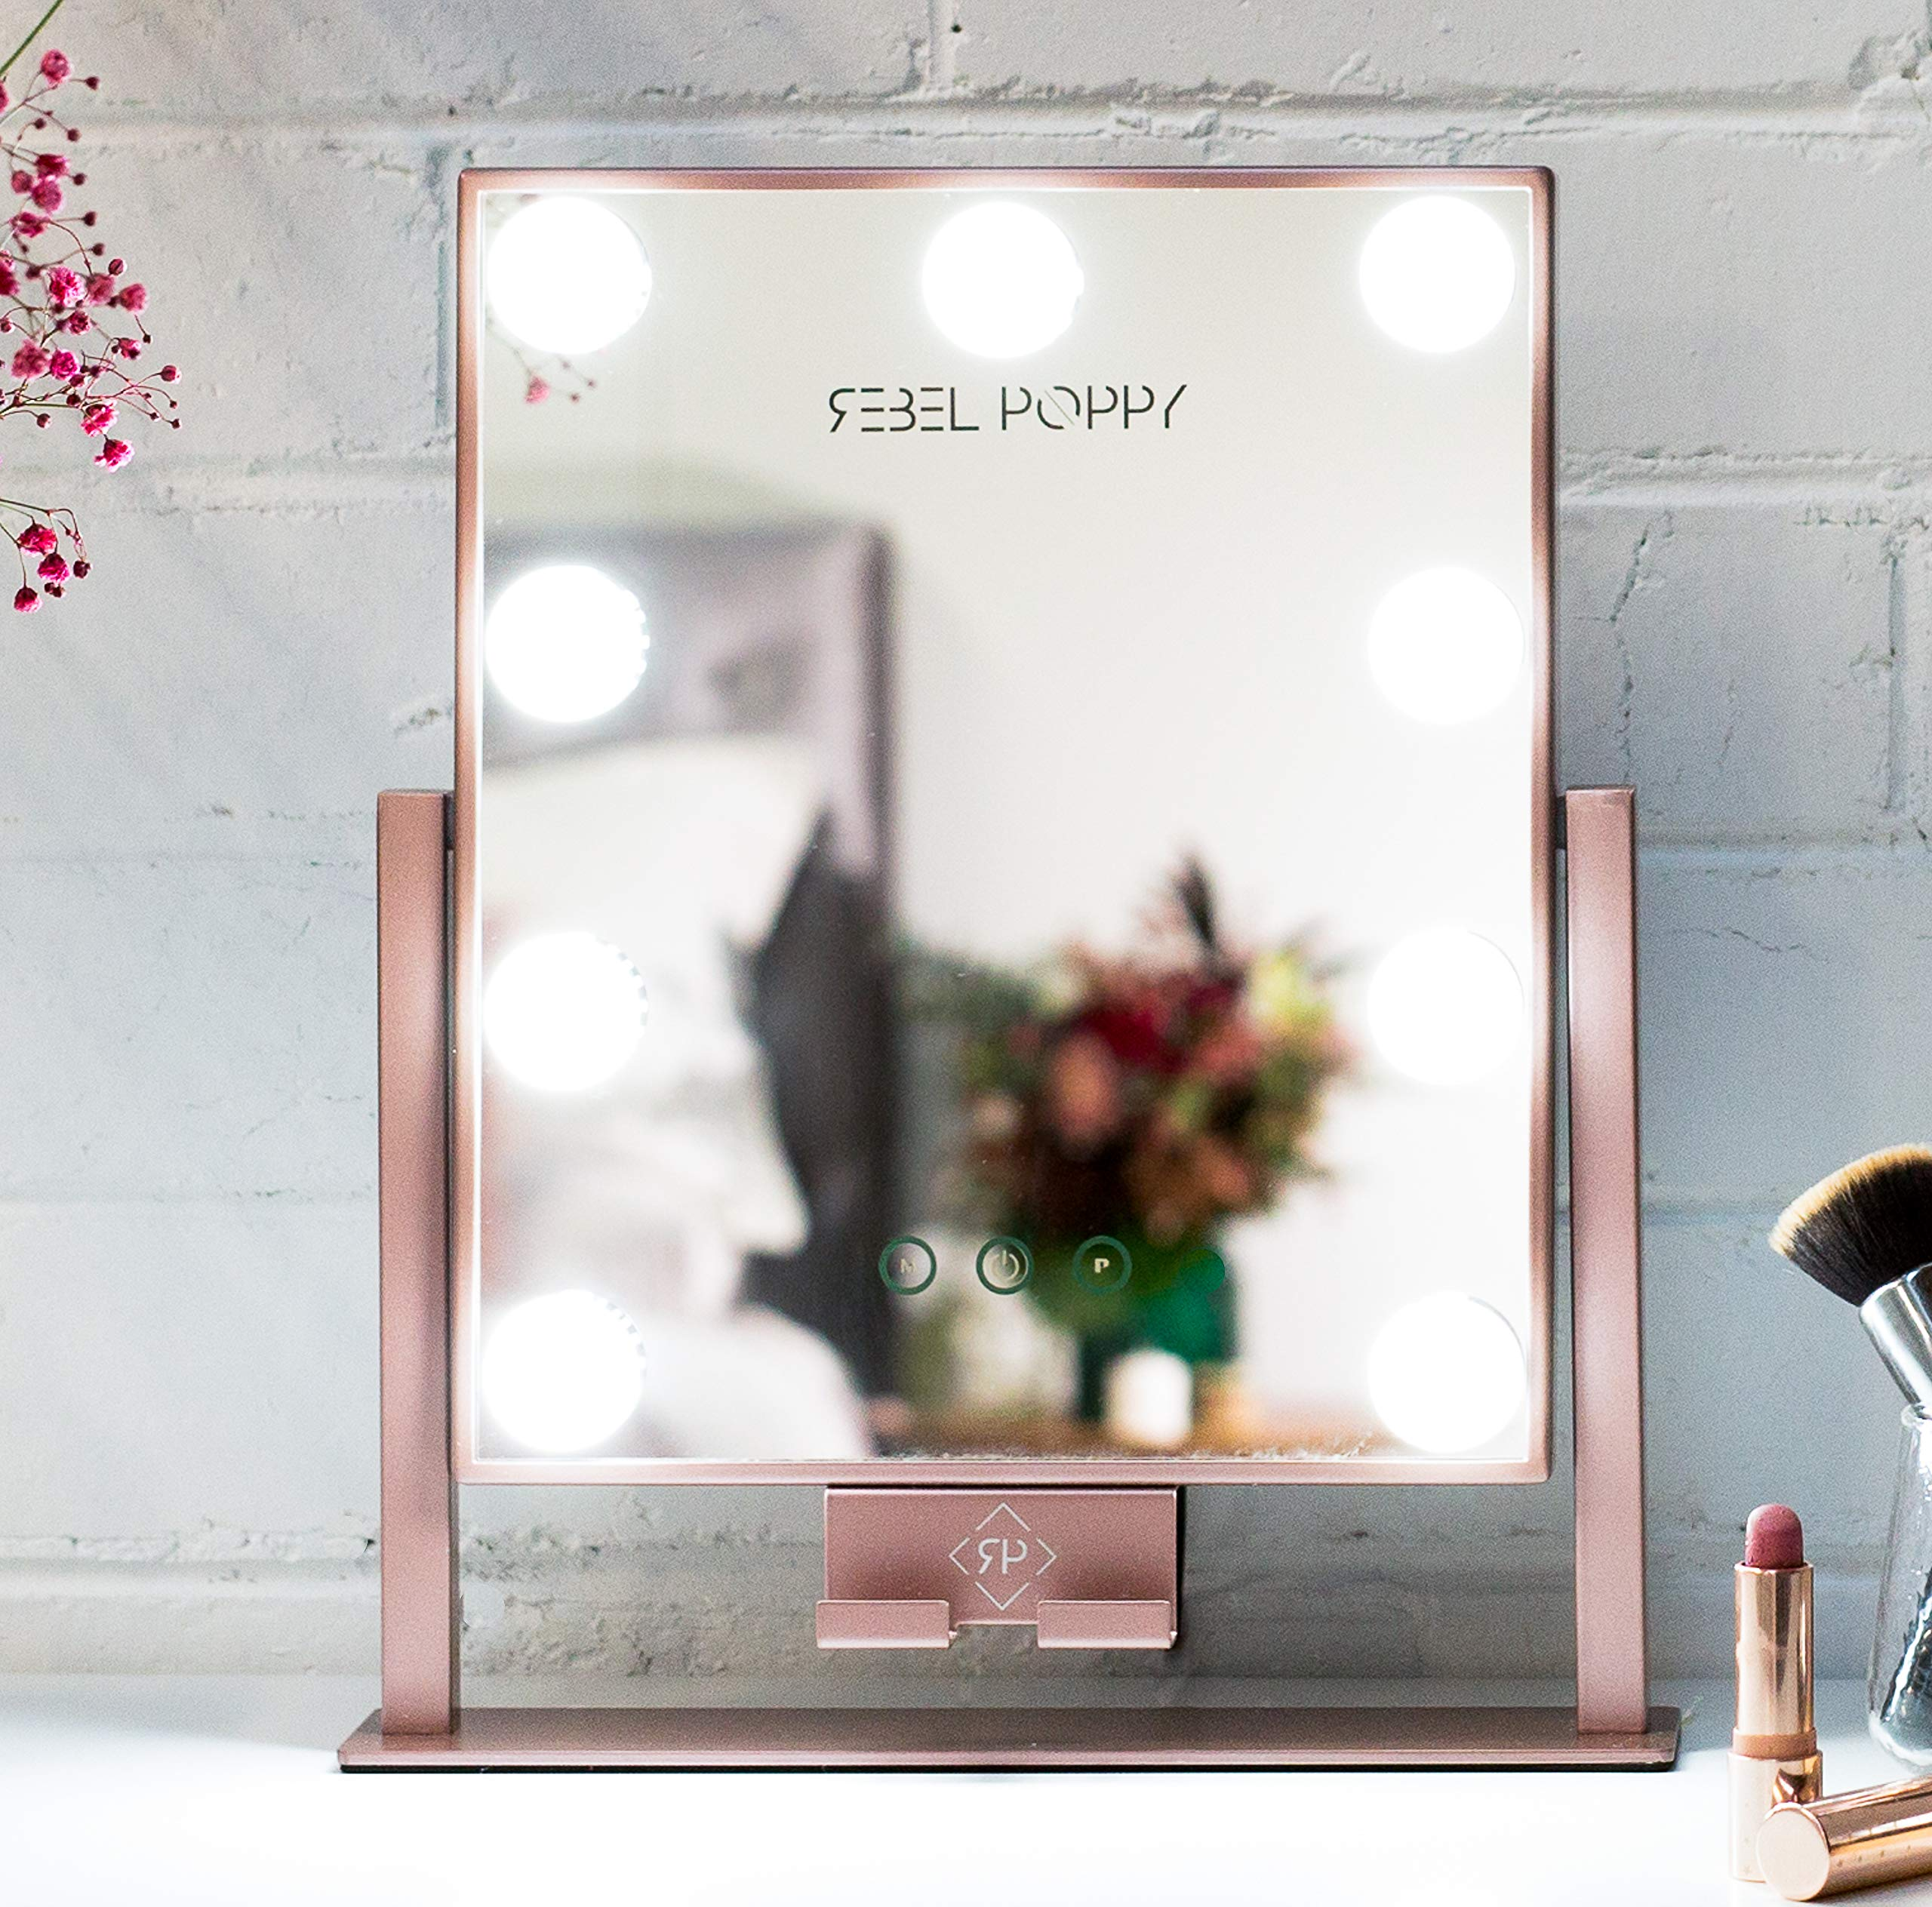 Rebel Poppy Lighted Makeup Mirror - Vanity Mirror with Lights, Phone Holder with 3 Colour Touch Control, Replaceable and Dimmable LED Bulbs, Hollywood Style Vanity Mirror, Rose Gold by Rebel Poppy